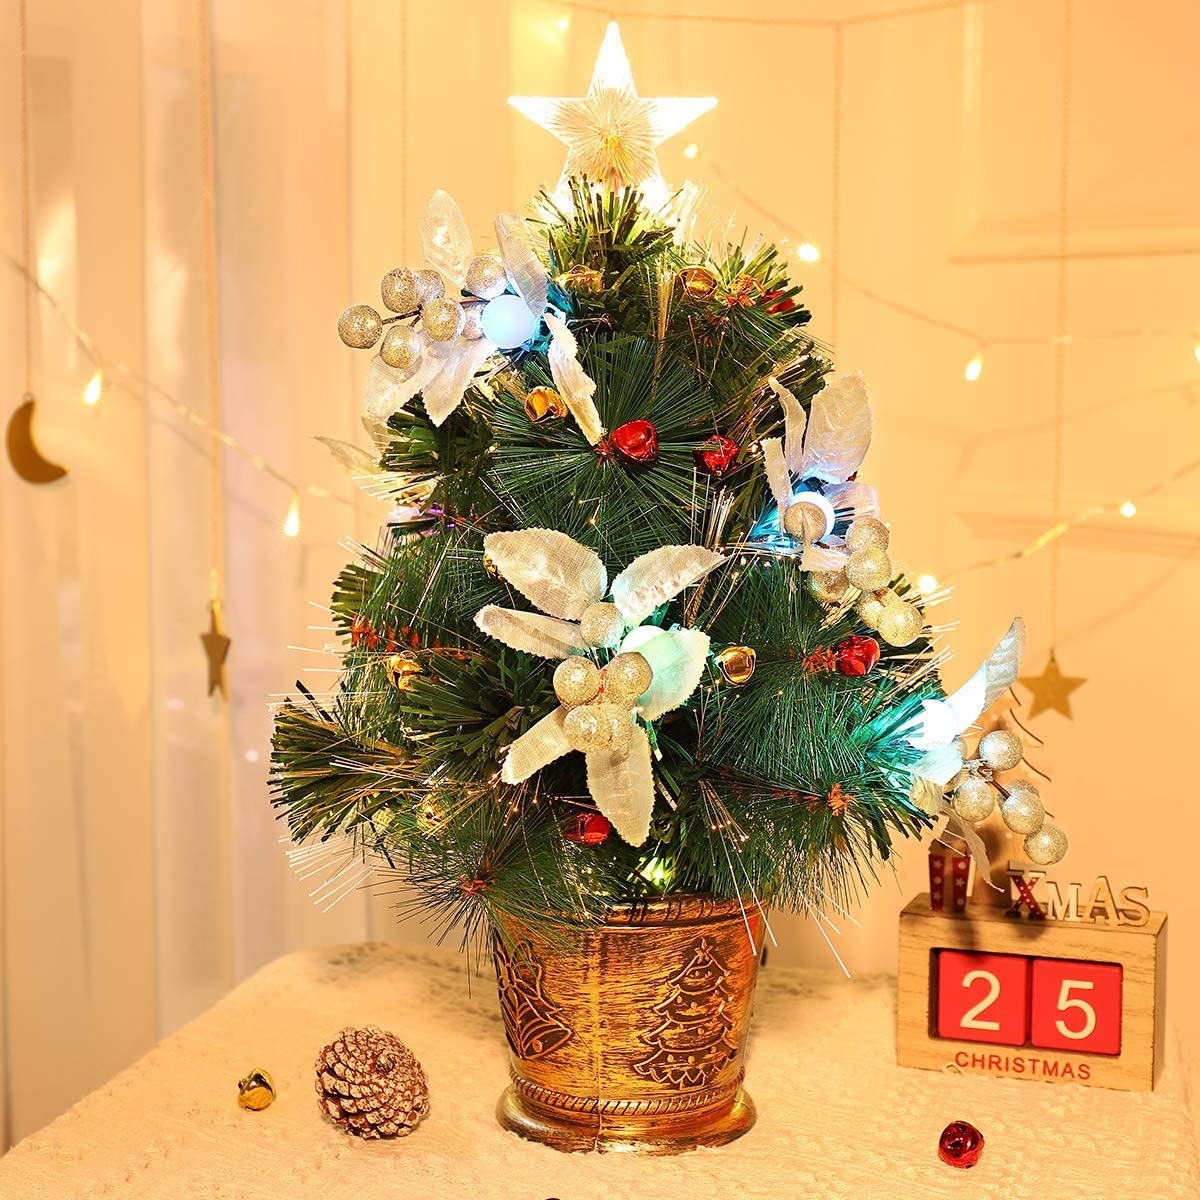 Amazon Com Unomor Tabletop Christmas Tree With Led Star Treetop Mini Artificial Christmas Tree With Fiber Optic Lights And Silver Berries For Christmas Decorations 20 Inch Christmas Bells Not Include Home